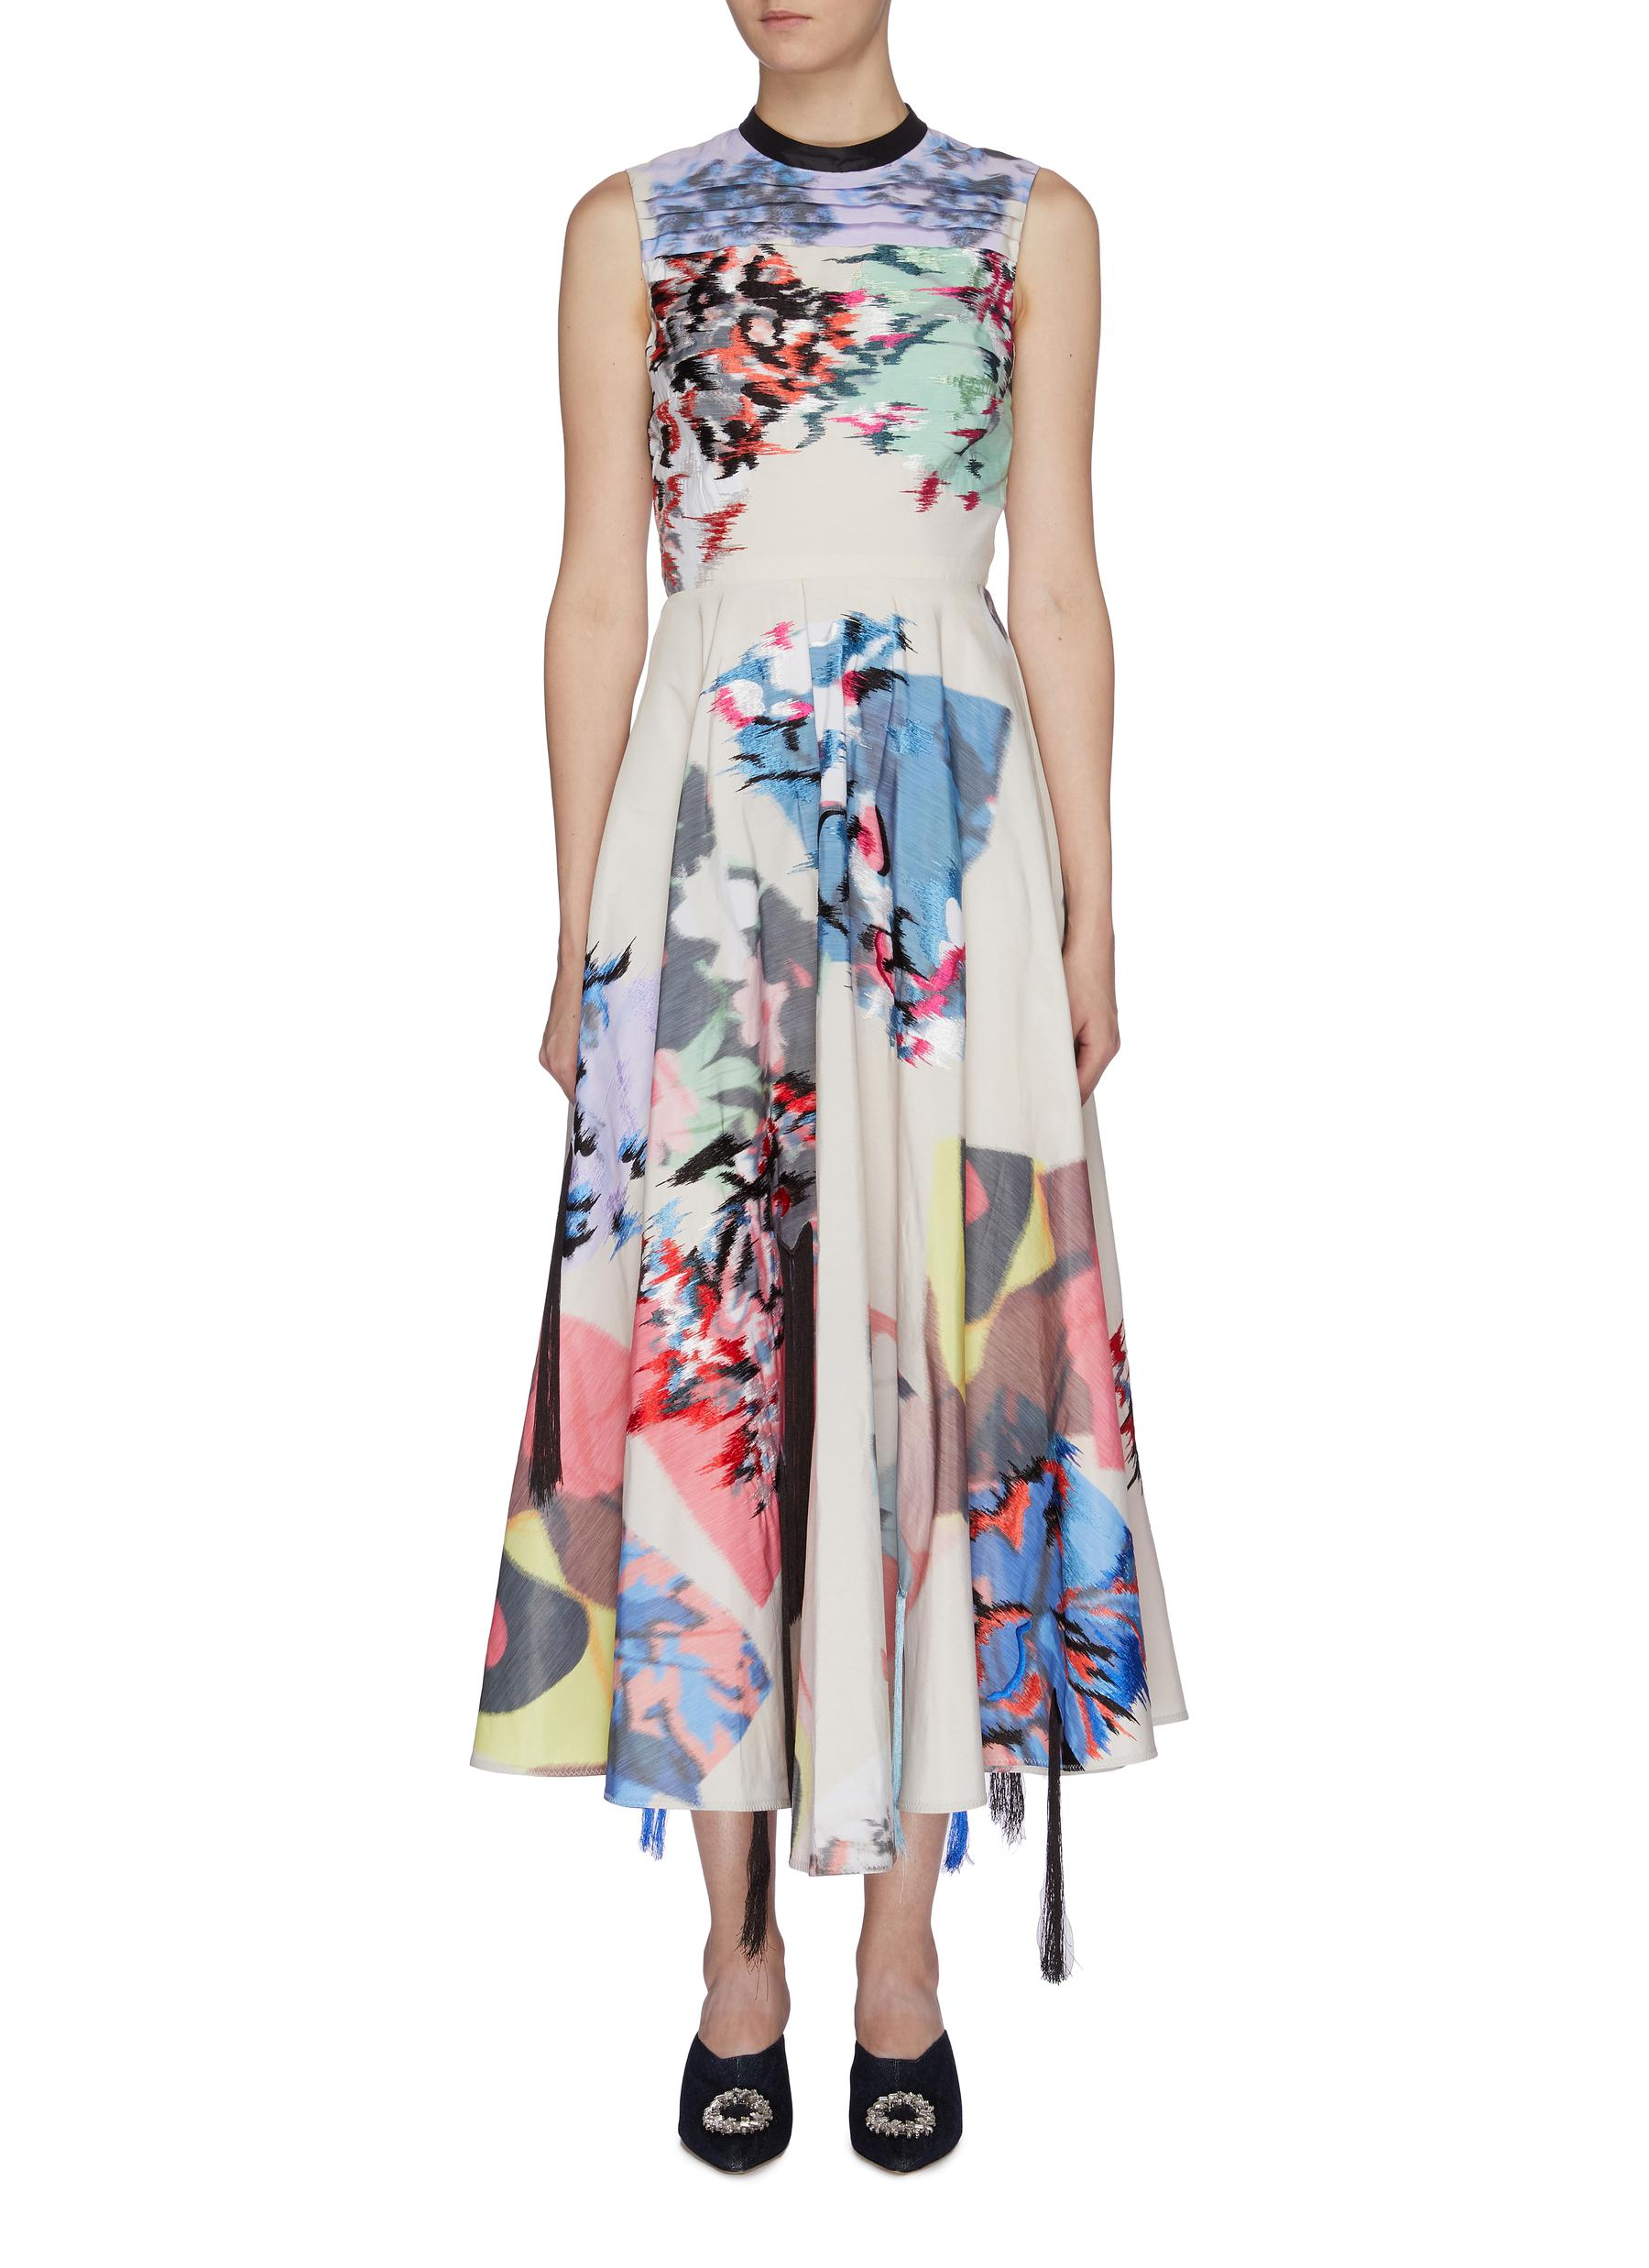 Larura fringe pleated floral print sleeveless dress by Roksanda